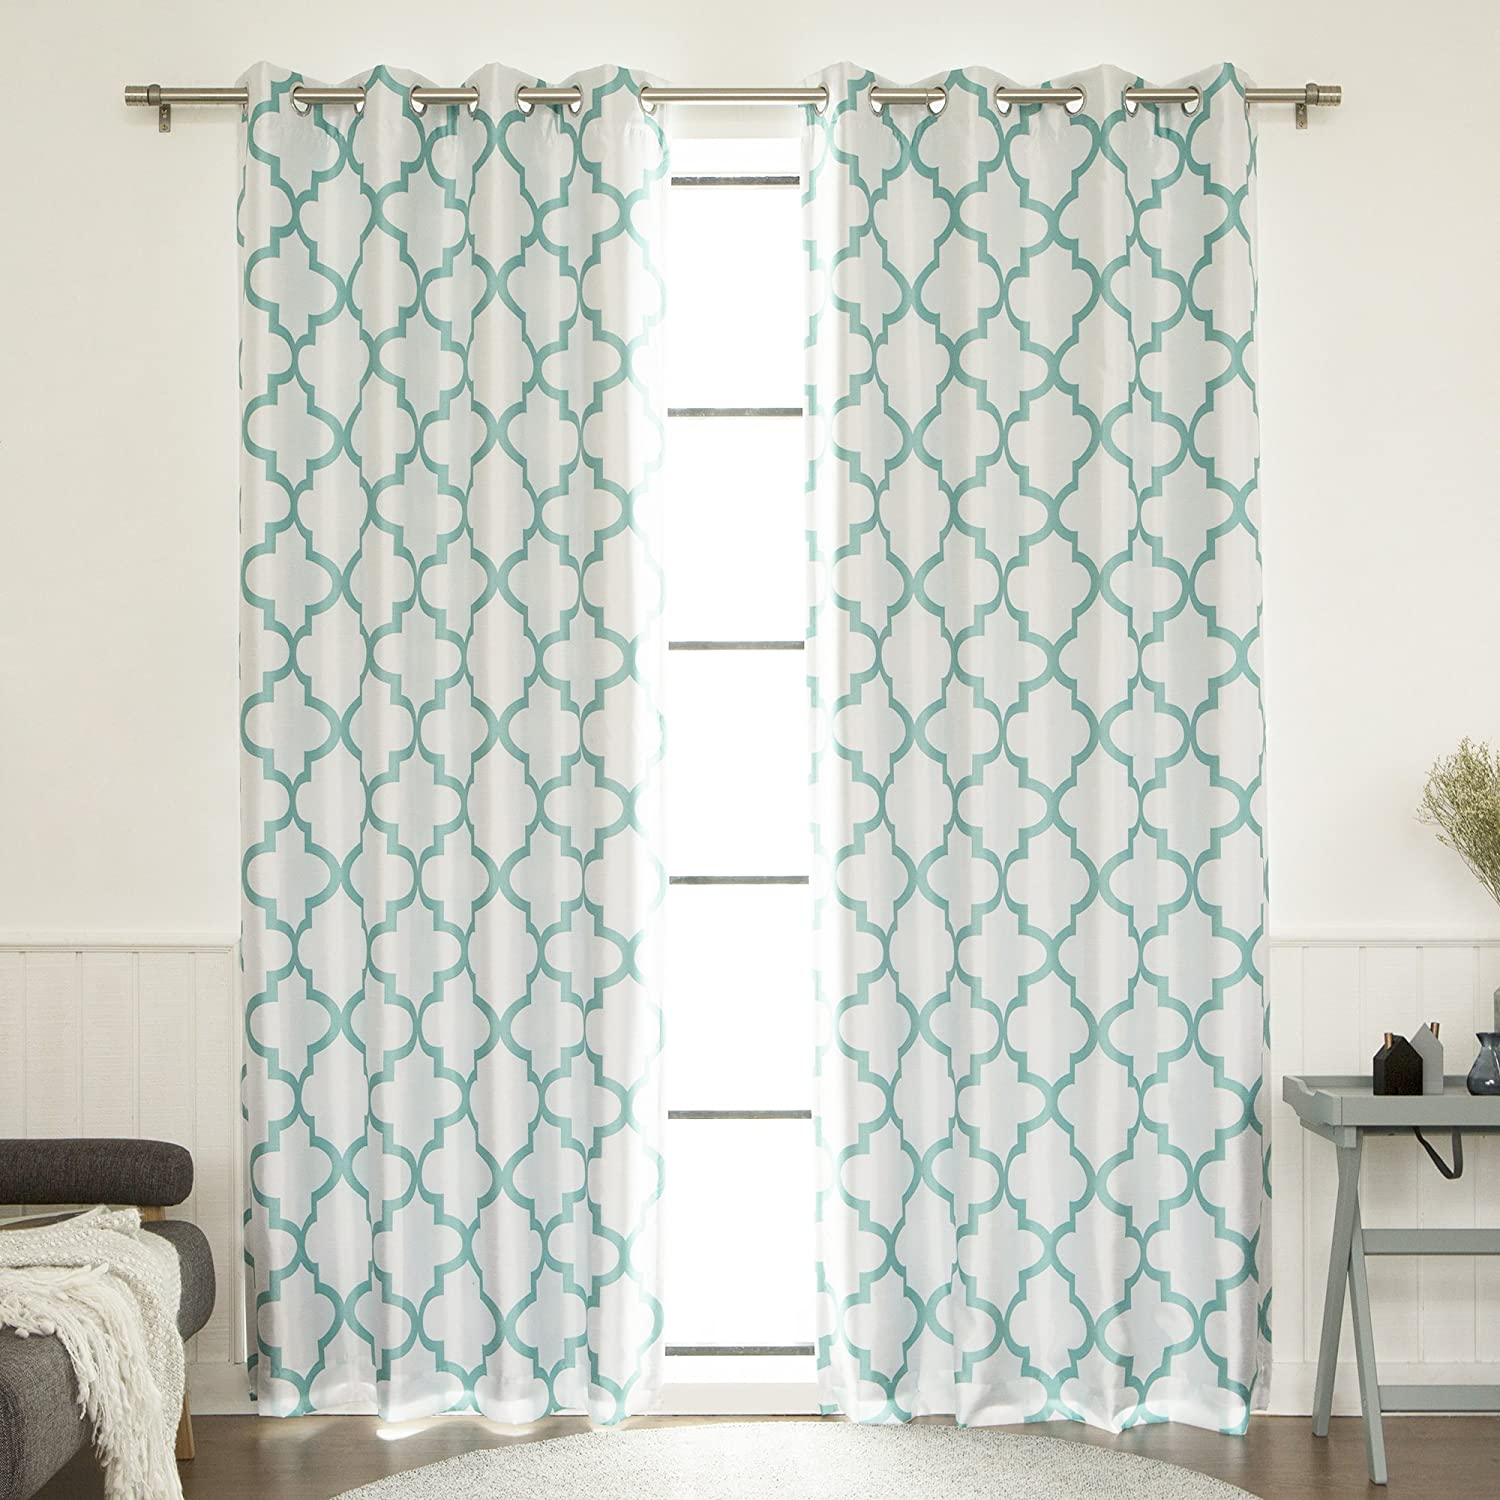 """Best Home Fashion Closeout Reverse Moroccan Faux Silk Blackout Curtain - Stainless Steel Nickel Grommet Top - Sky Blue - 52"""" W X 84"""" L - (1 Panel)"""